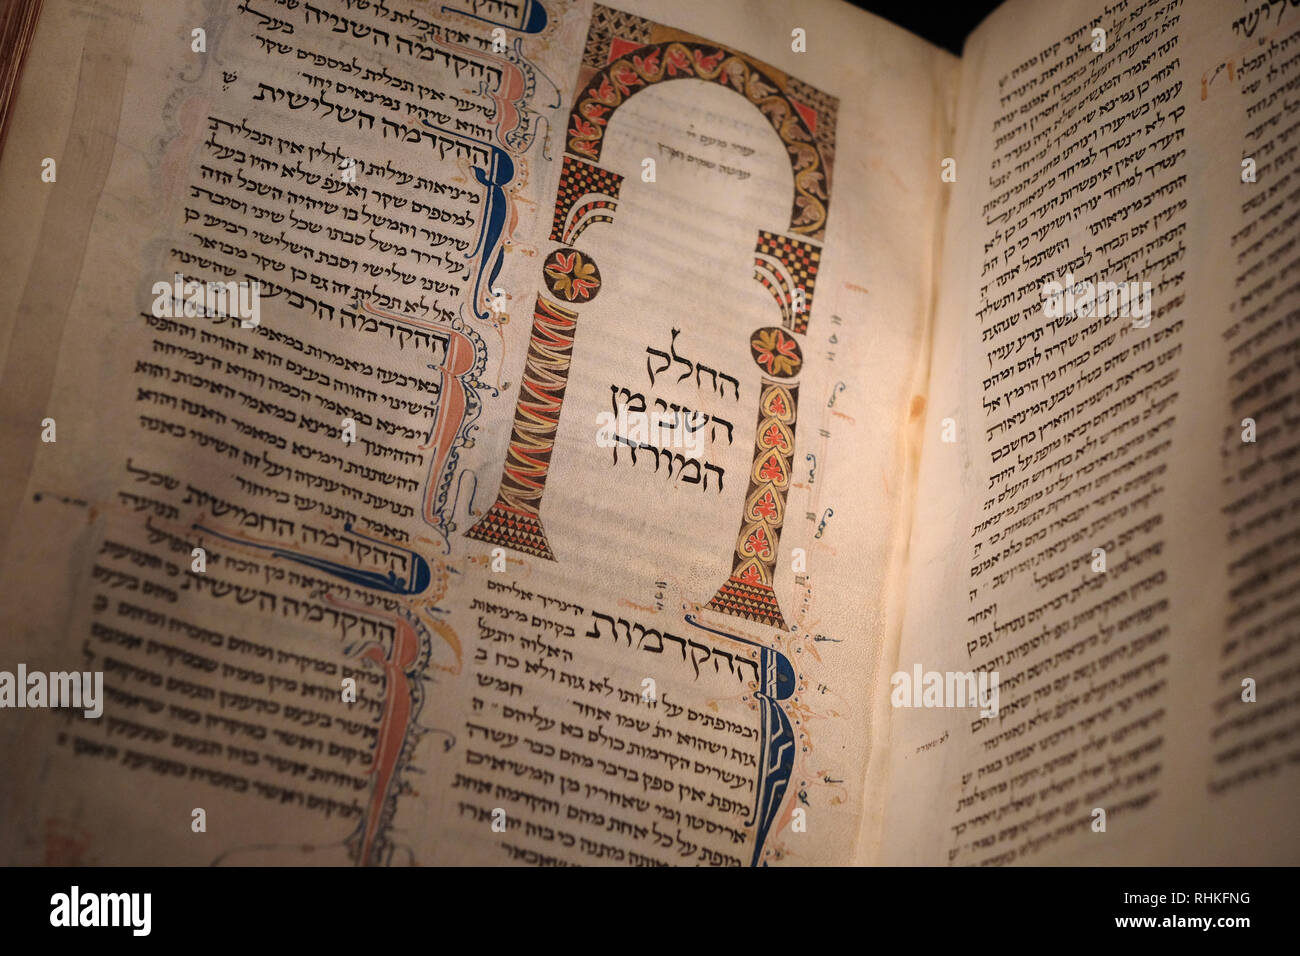 Jerusalem, Israel  2nd February, 2019  A medieval